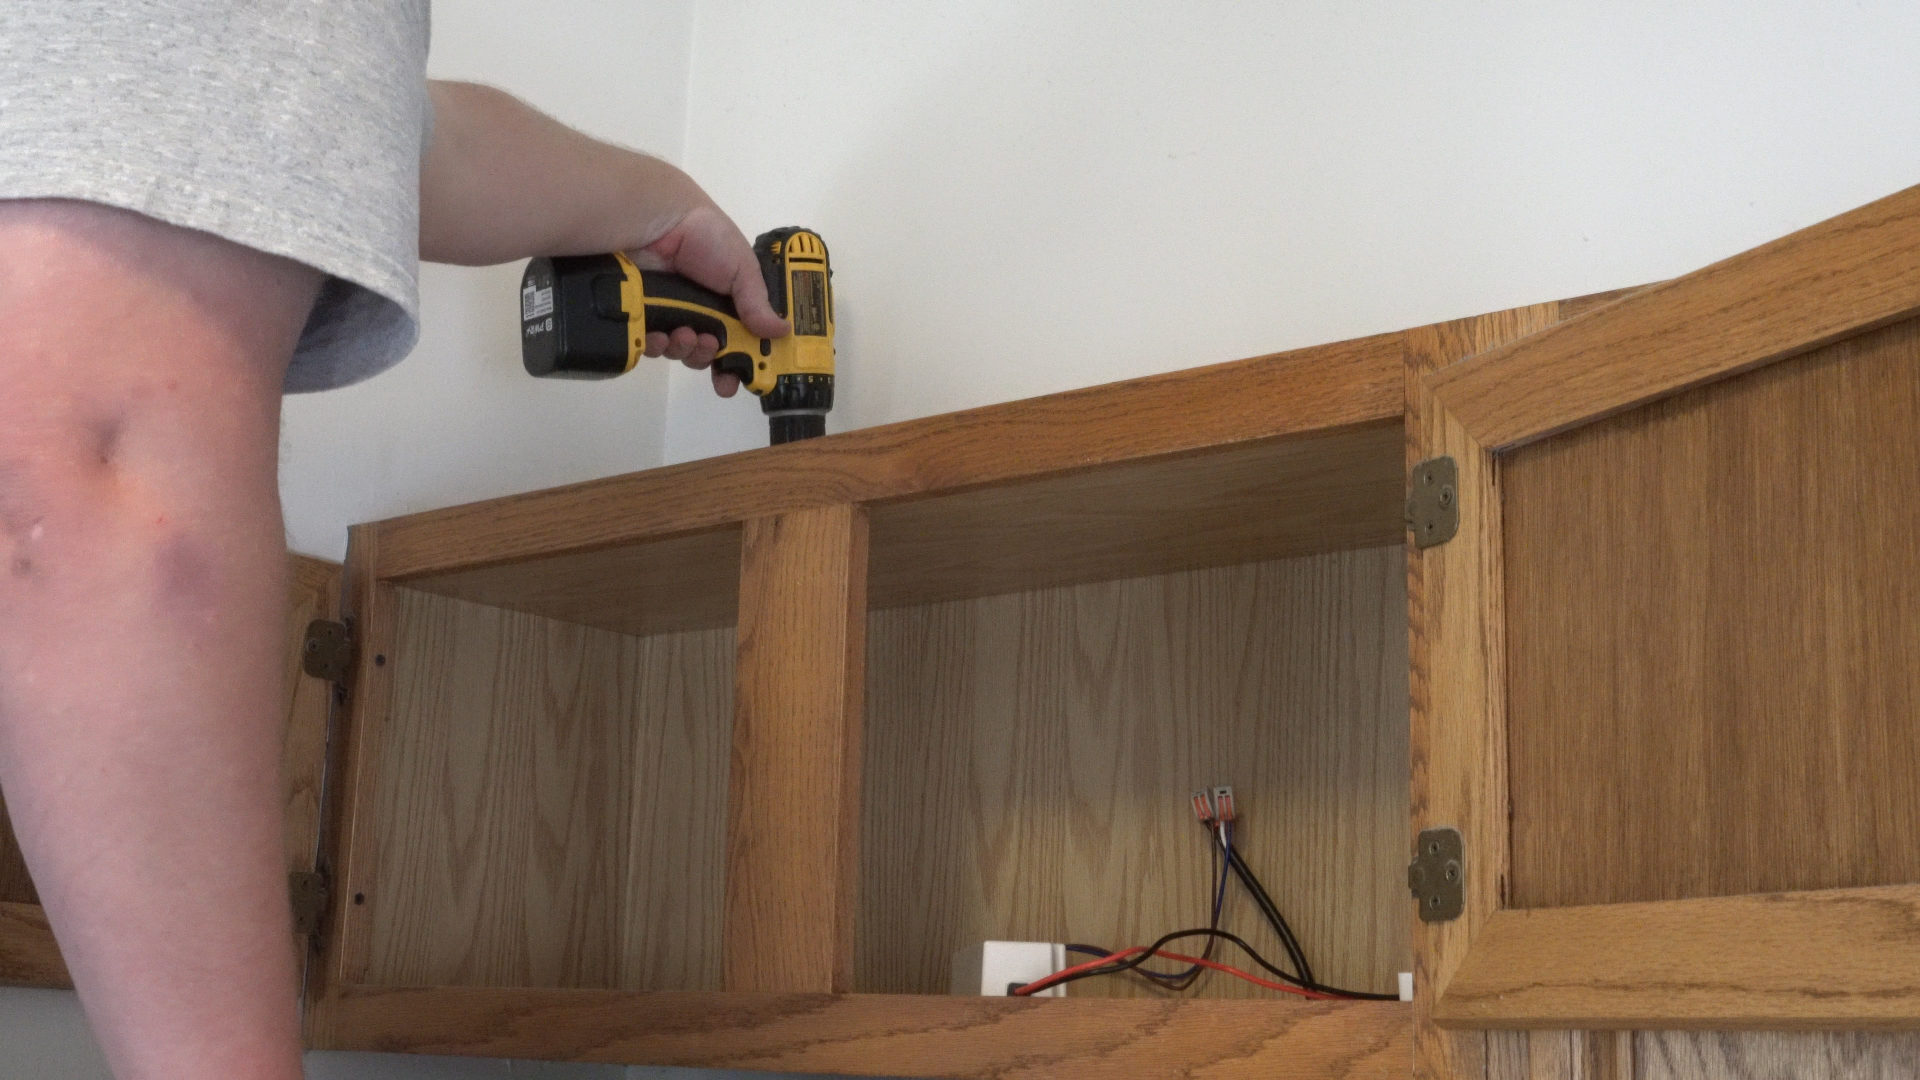 Above-Cabinet Lighting: How to Install LED Strip Lights - step 1